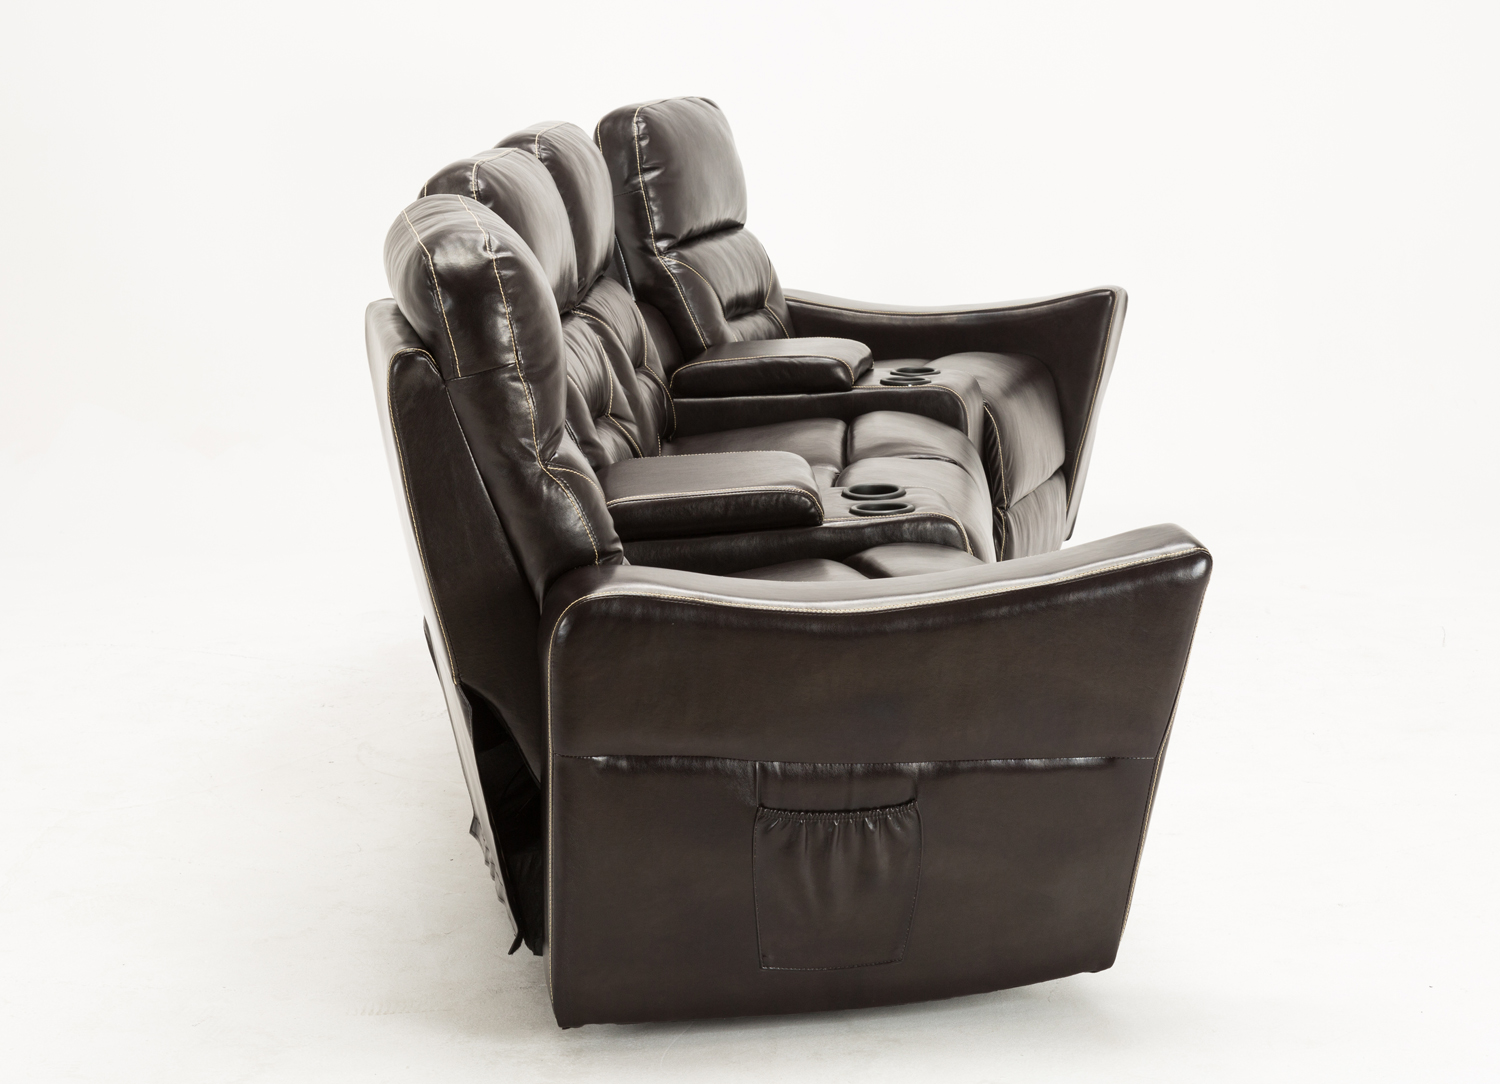 Mcombo 4 Seat Leather Home Theater Recliner Media Sofa W